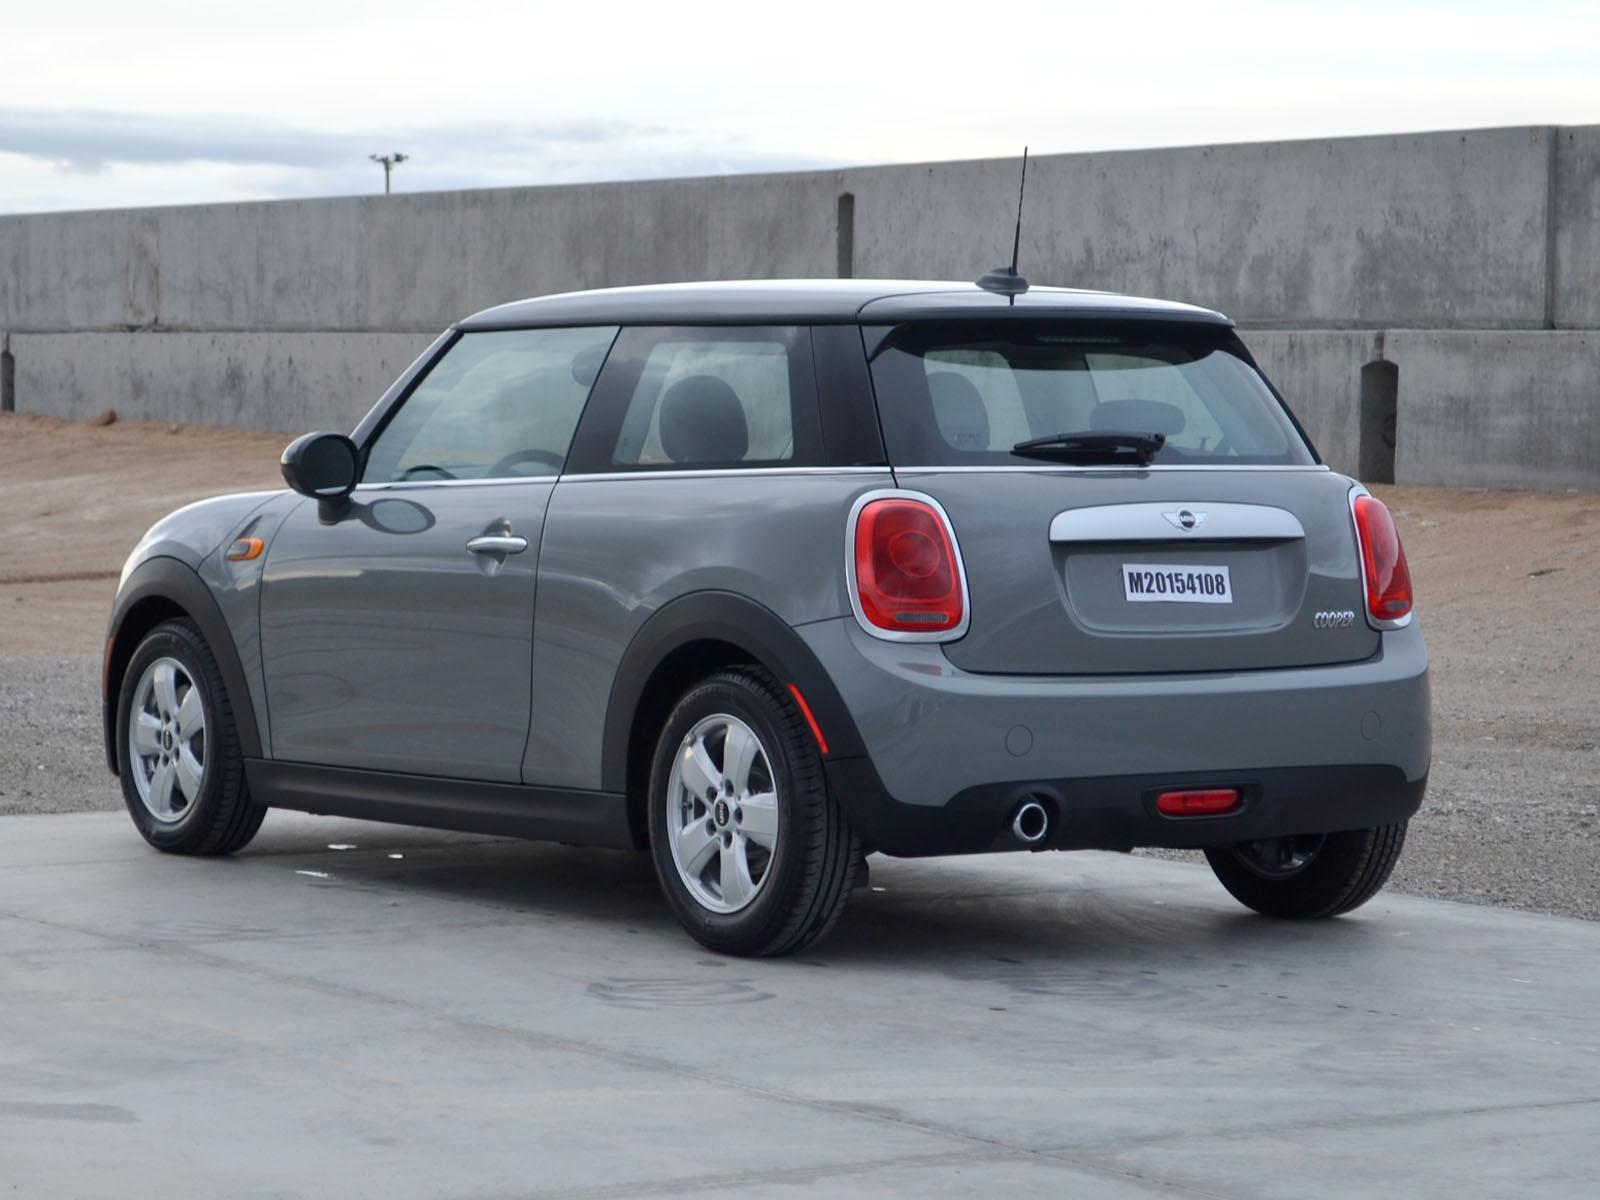 file 2015 mini cooper hardtop 2 door nhtsa test 9063 wikimedia commons. Black Bedroom Furniture Sets. Home Design Ideas